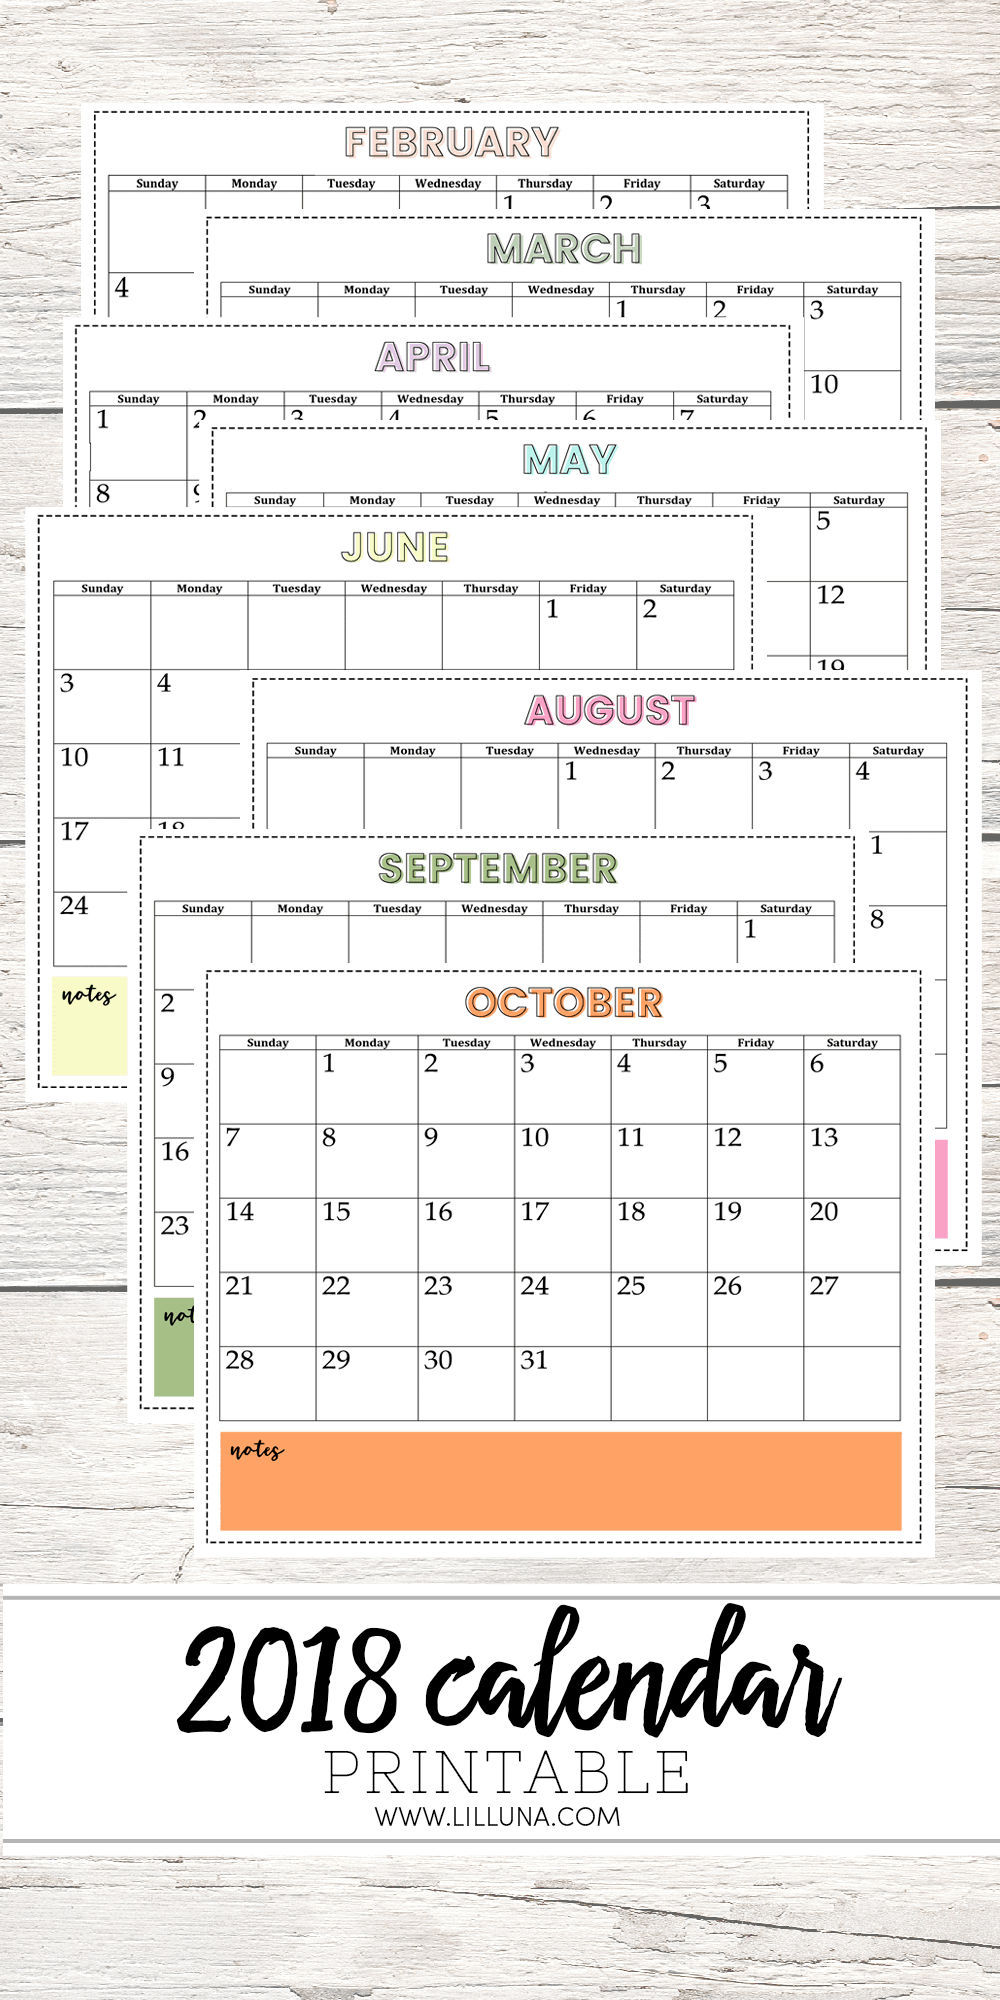 FREE 2018 Calendar - download, print and use to keep organized with monthly events, meal planning, cleaning and all tasks to do each day, week and month!